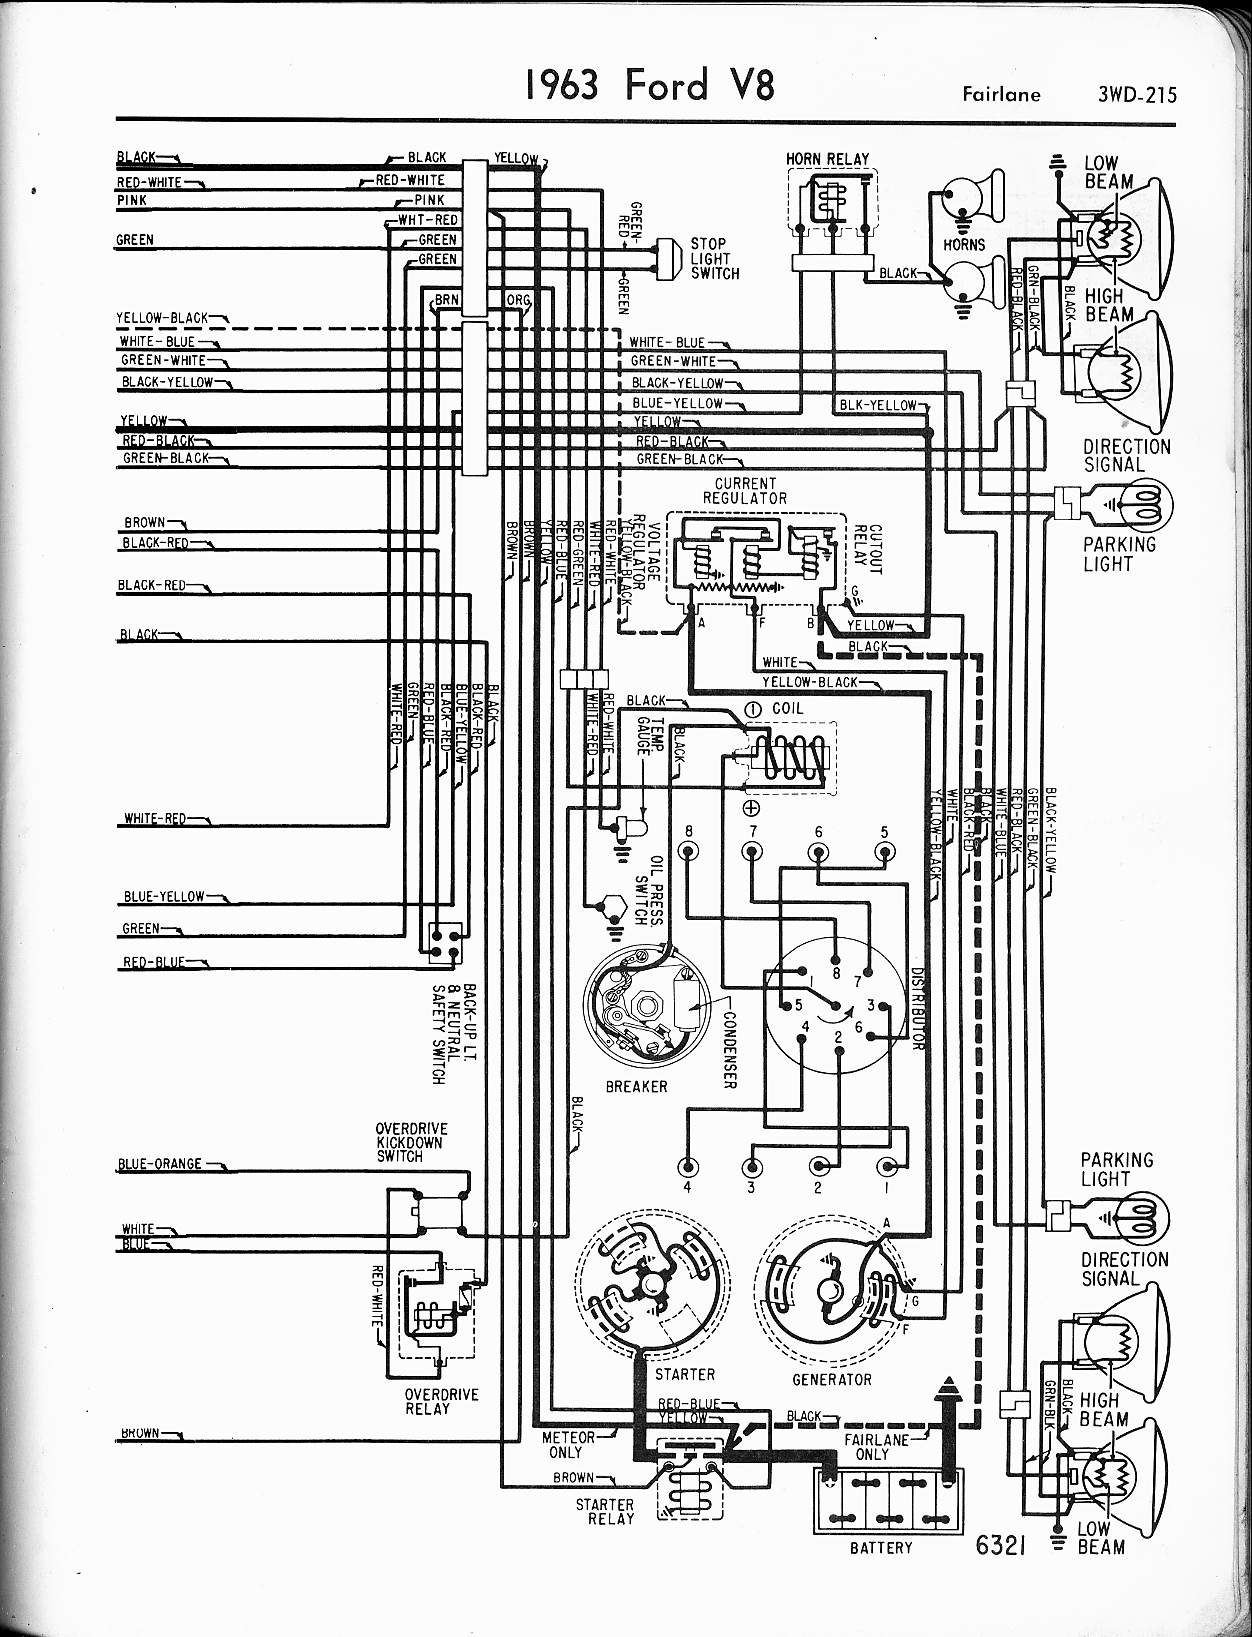 67 Mustang Ignition Wiring Diagram Wiring Diagram Or Schematic